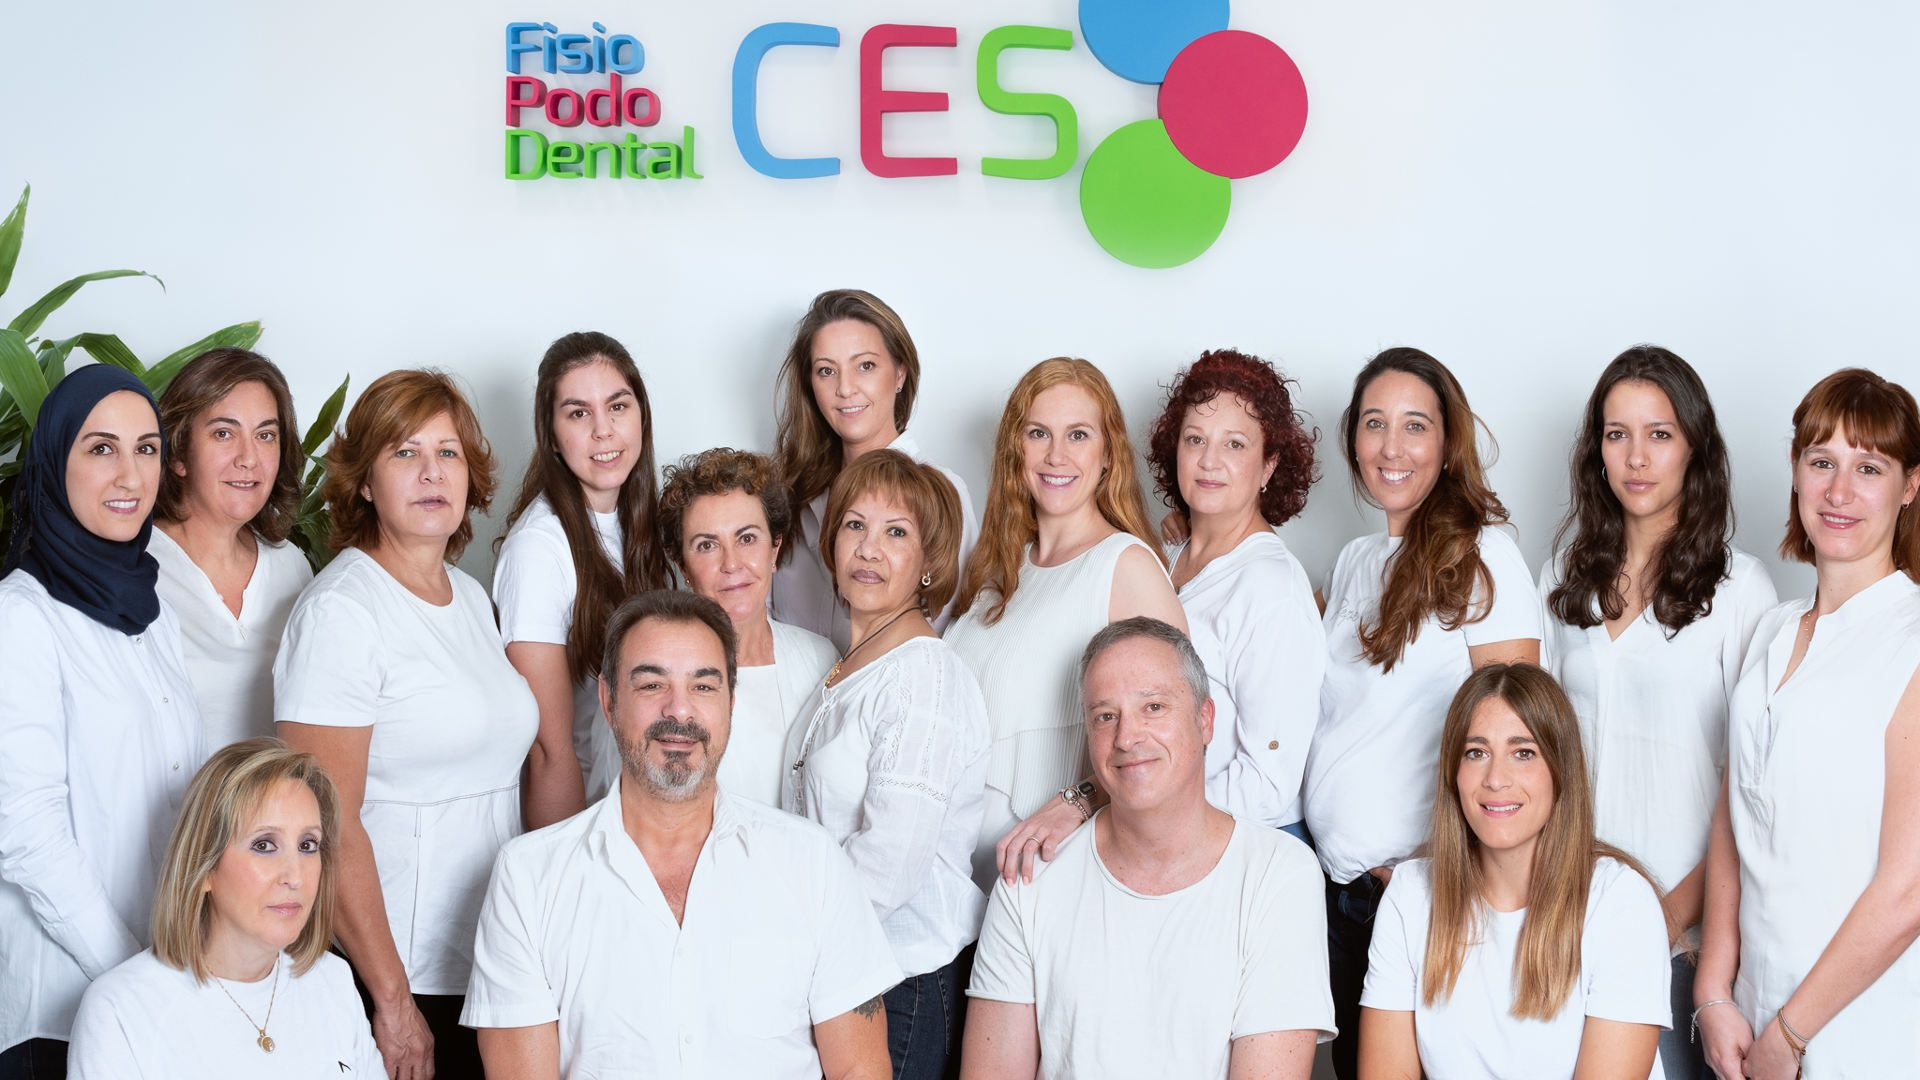 equipo dental ces